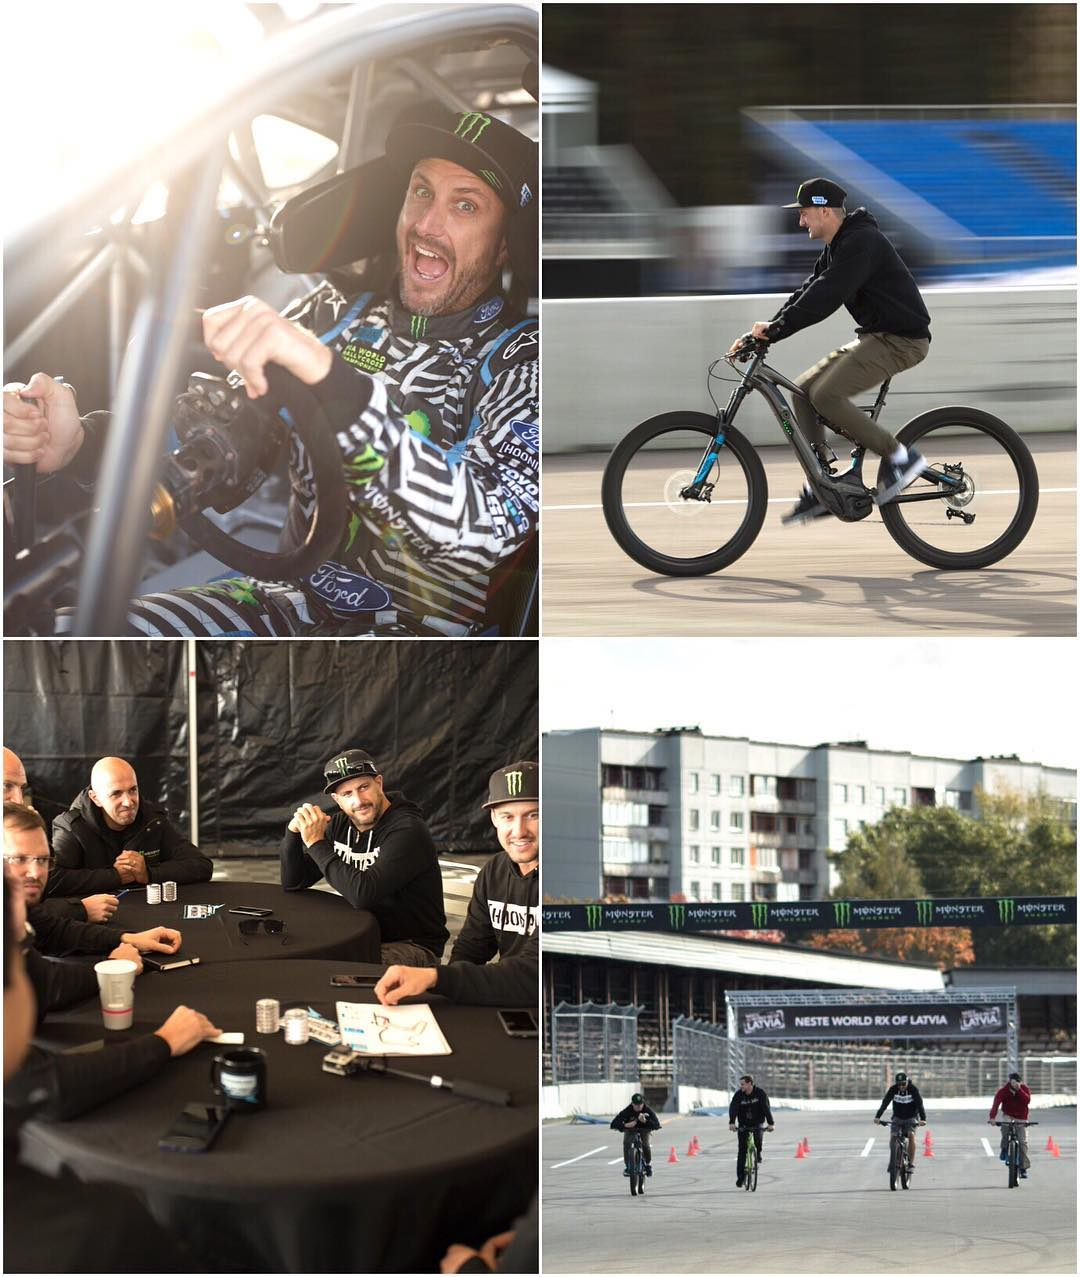 In my last post, I mentioned that today was a busy day here at @FIAWorldRX round 10 in Latvia. Here are a few visuals of today's fun, courtesy of Mr. @Larry_Chen_Foto. #LatviaRX #bikergang #SpecializedSquad